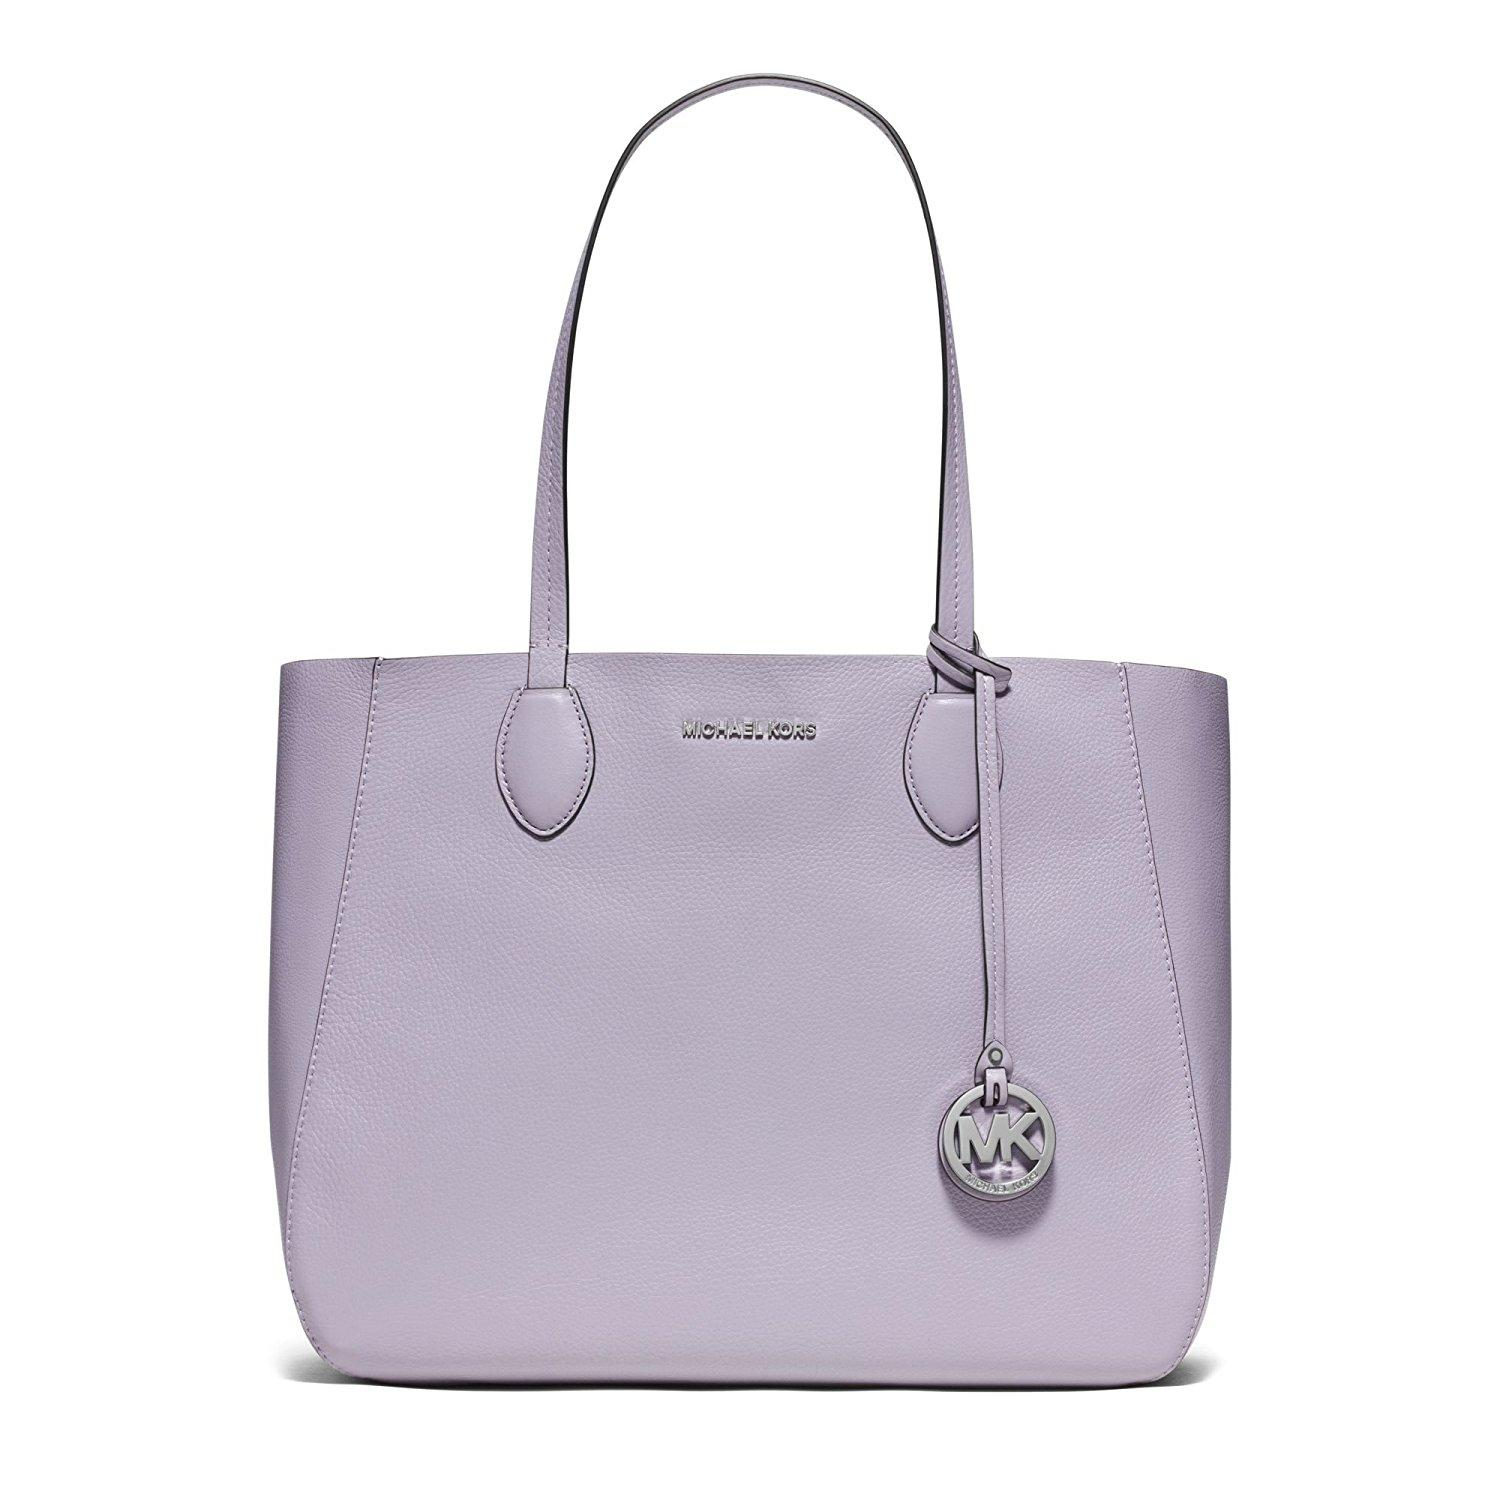 6190e64c9701 ... discount michael kors mae east west large leather tote in lilac silver  32a48 20598